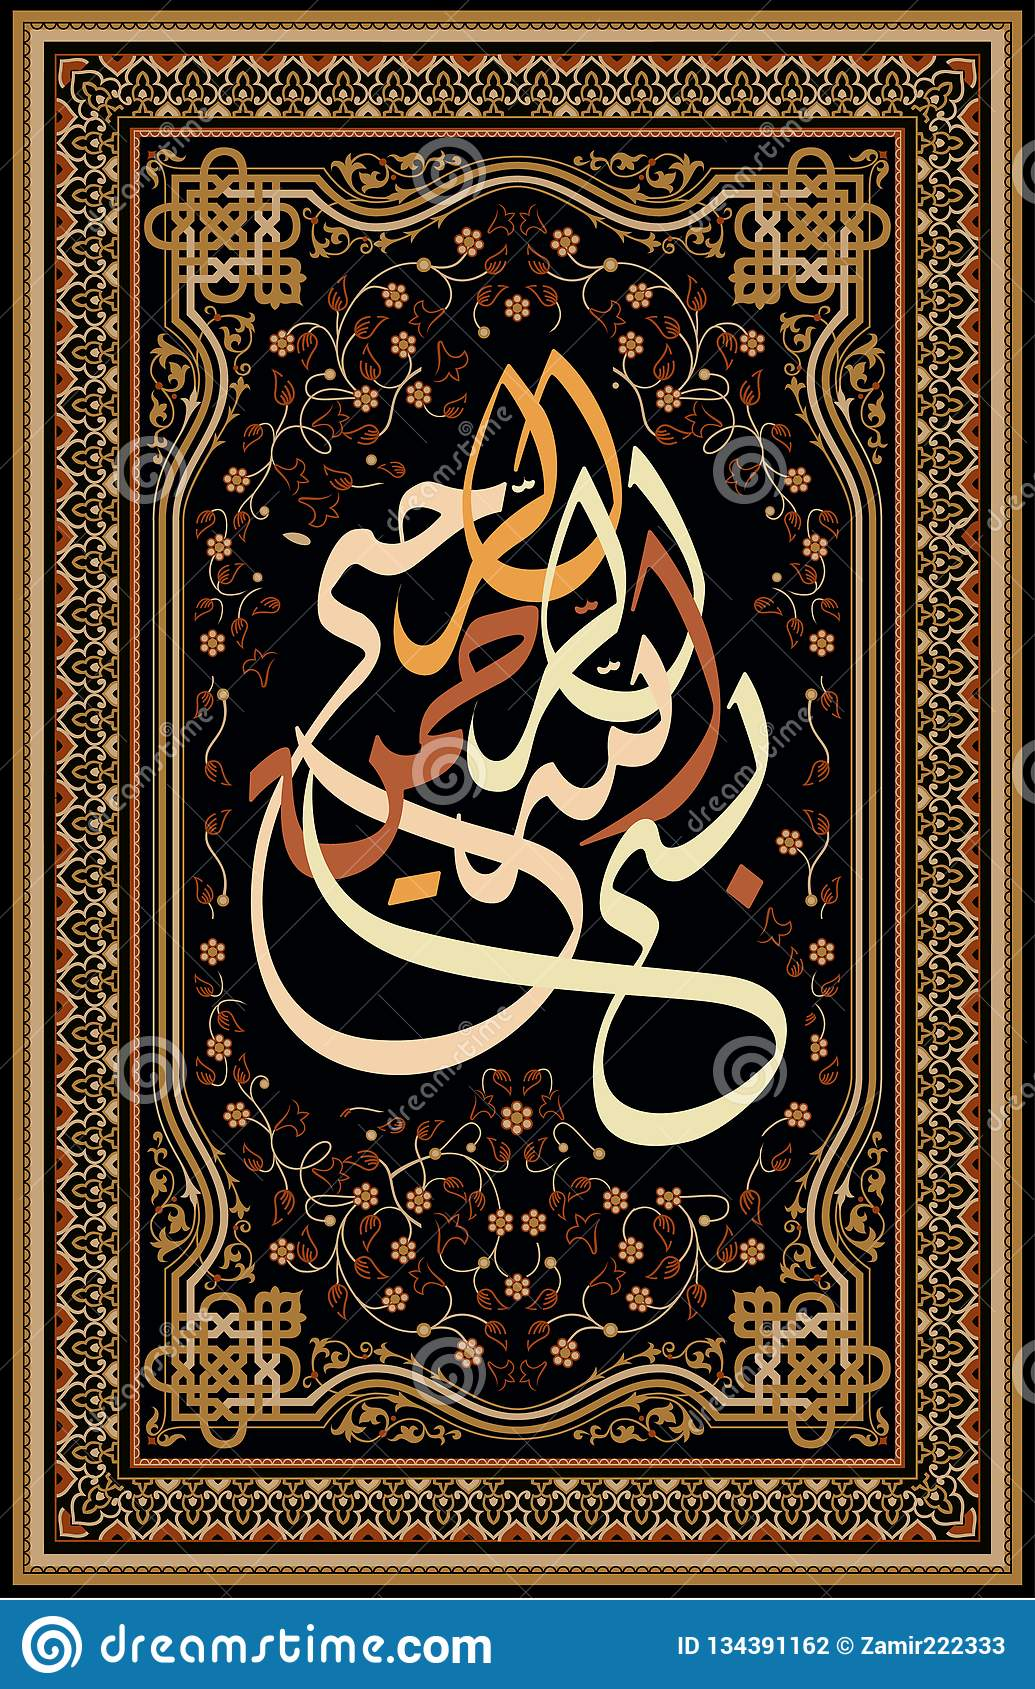 arabic calligraphy of the